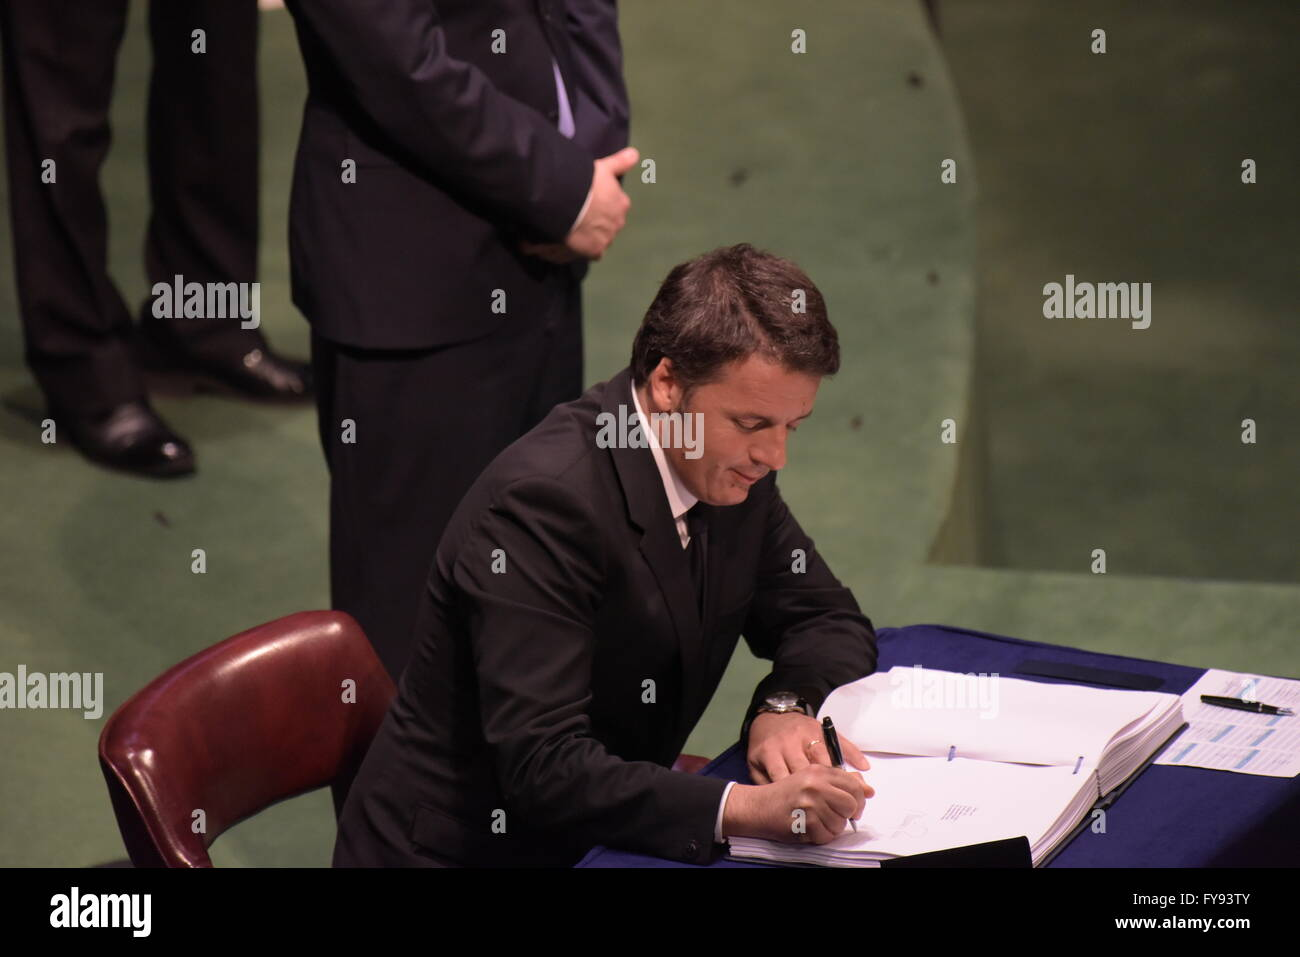 New York City, United States. 22nd Apr, 2016. Italian prime minister Matteo Renzi, signs for Italy. The United Nations - Stock Image